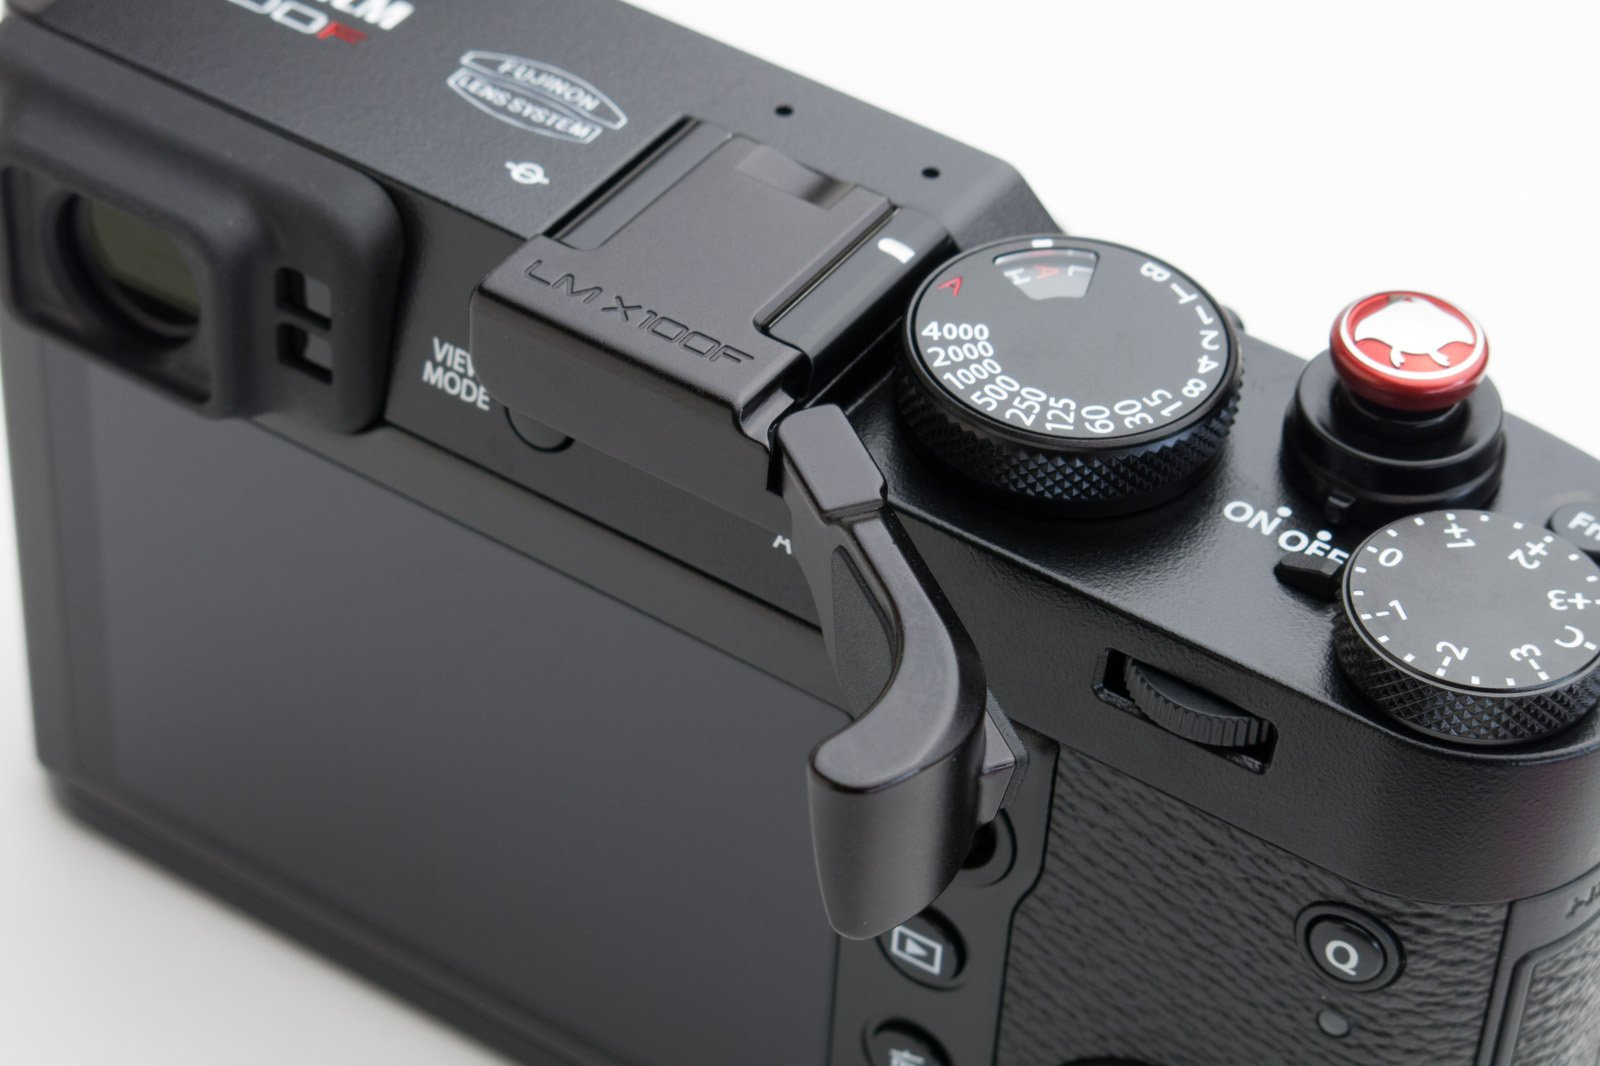 Lensmate Thumb Grip for Fujifilm X100F - Black by Lensmate